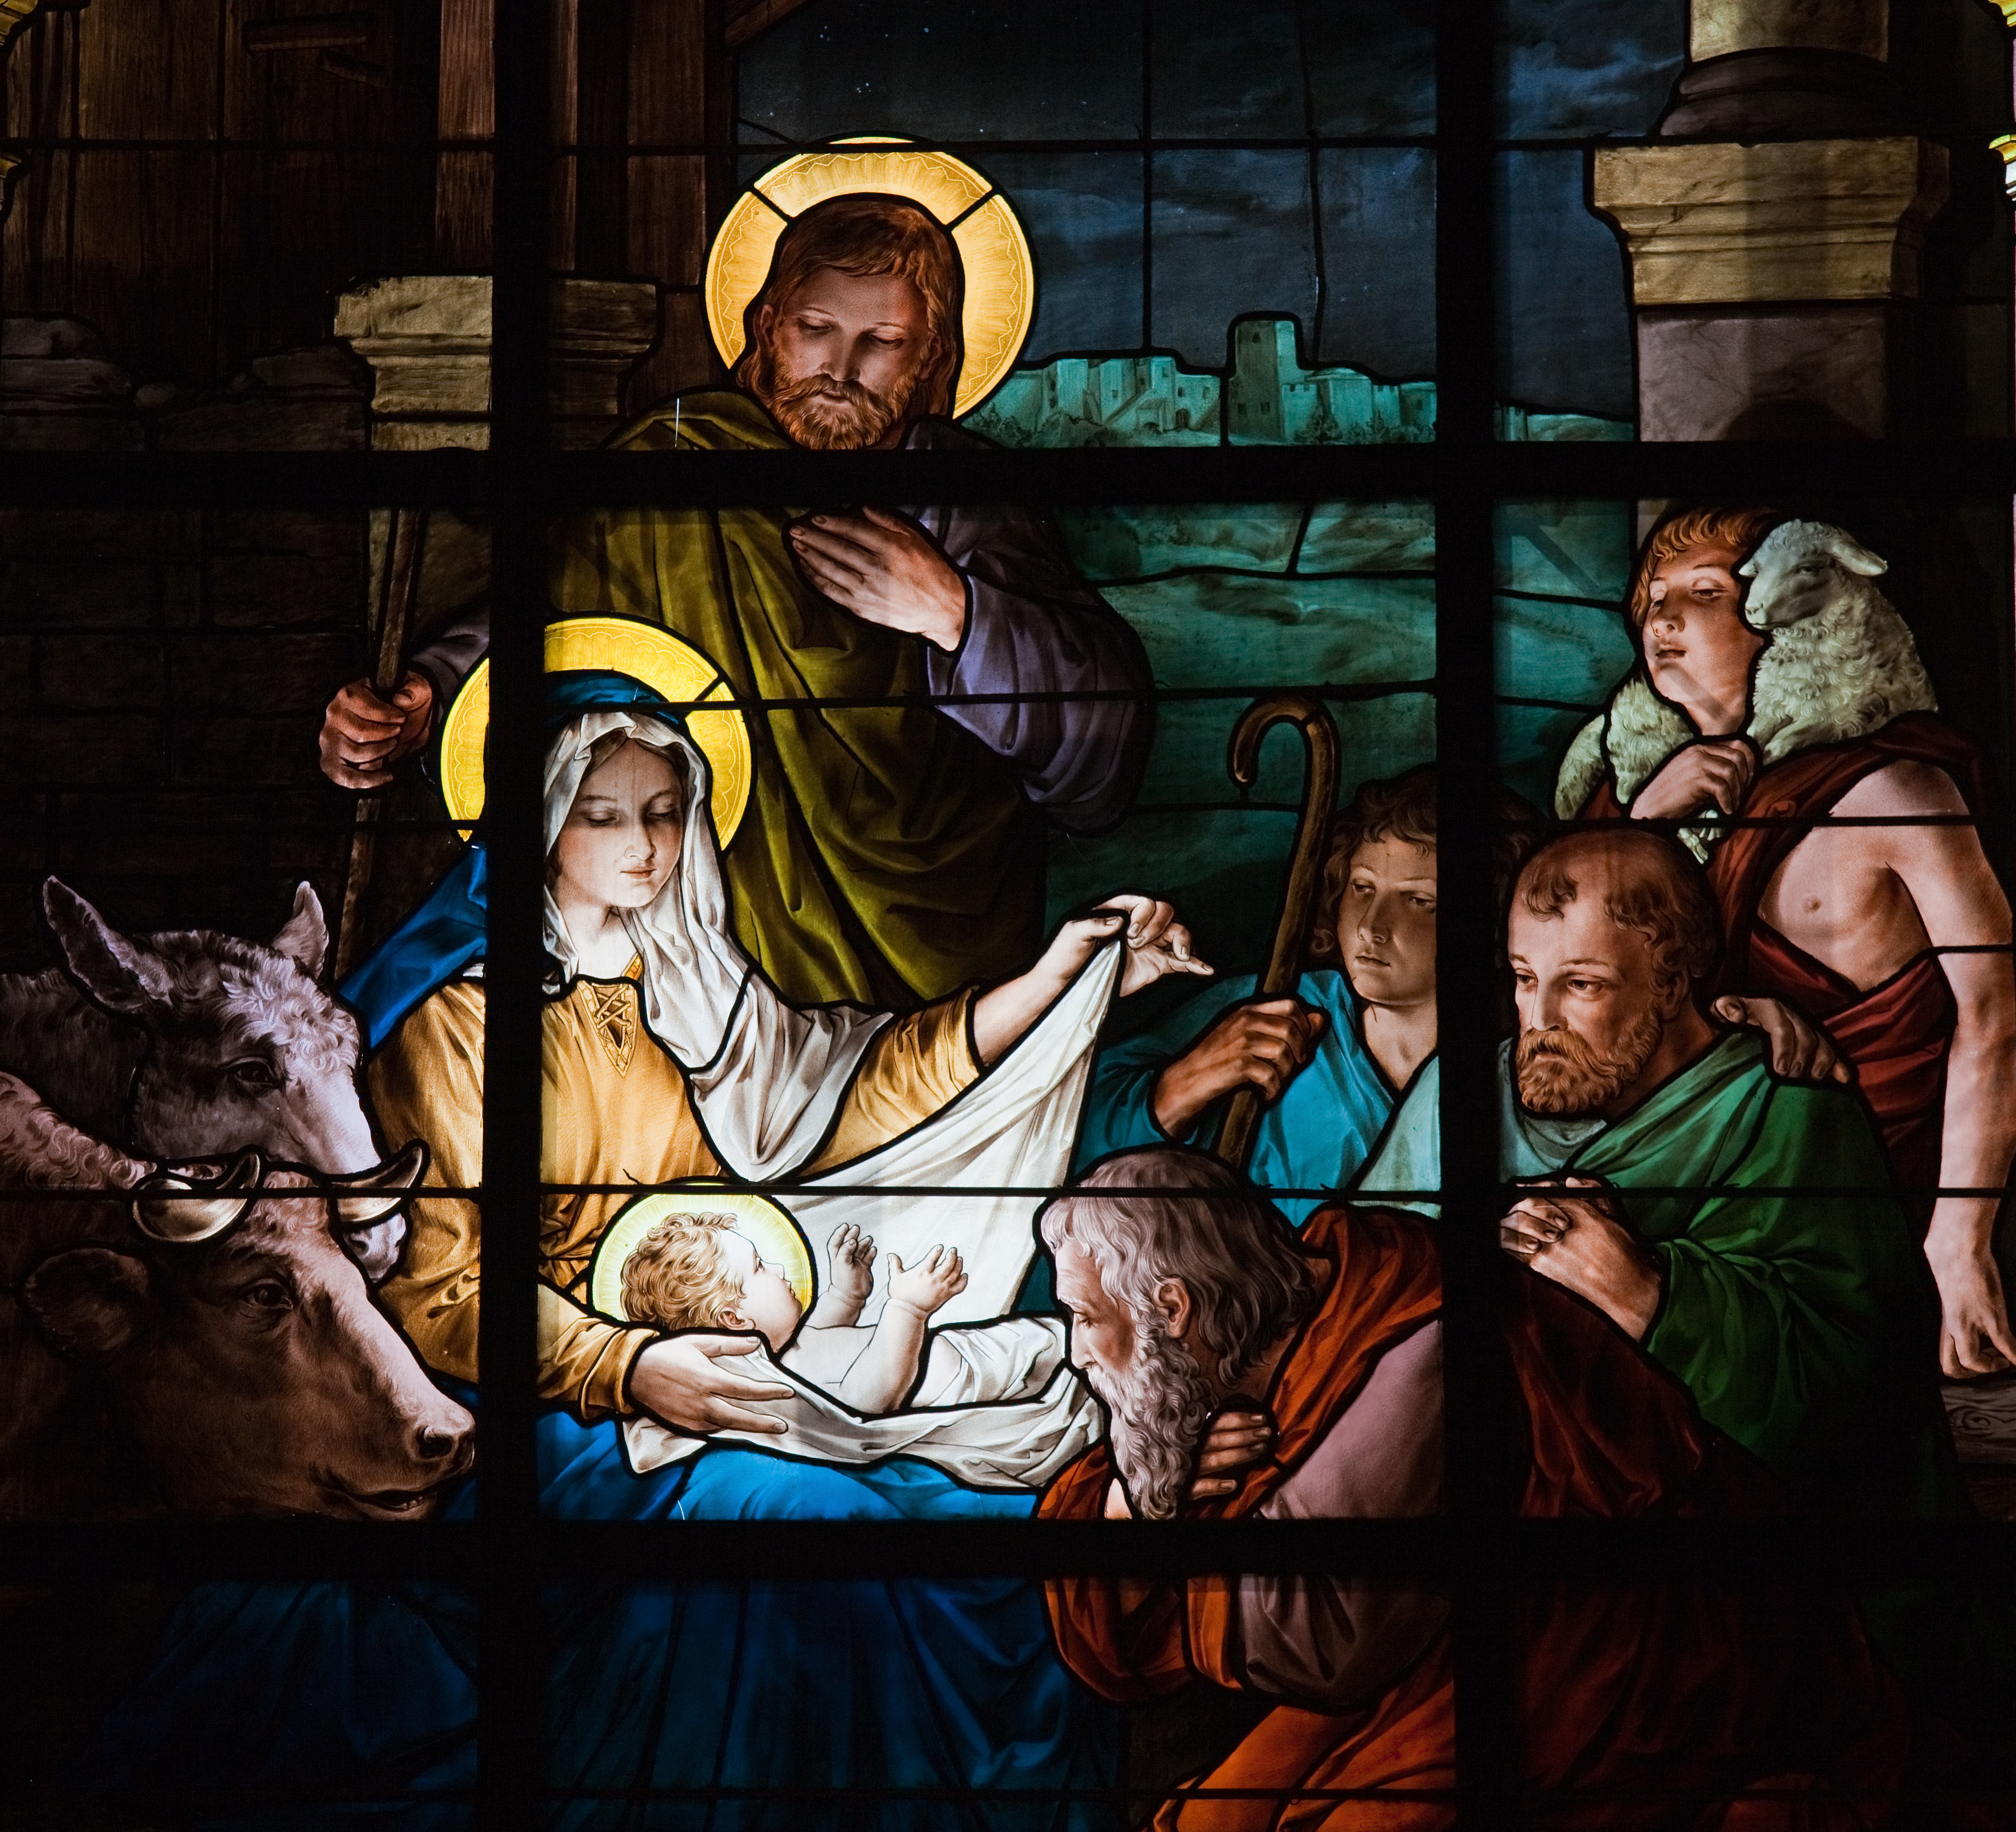 Stained glass window created by F. Zettler (1878-1911) at the German Church (St. Gertrude's church) in Gamla Stan in Stockholm, depicting the Nativity Scene - Image